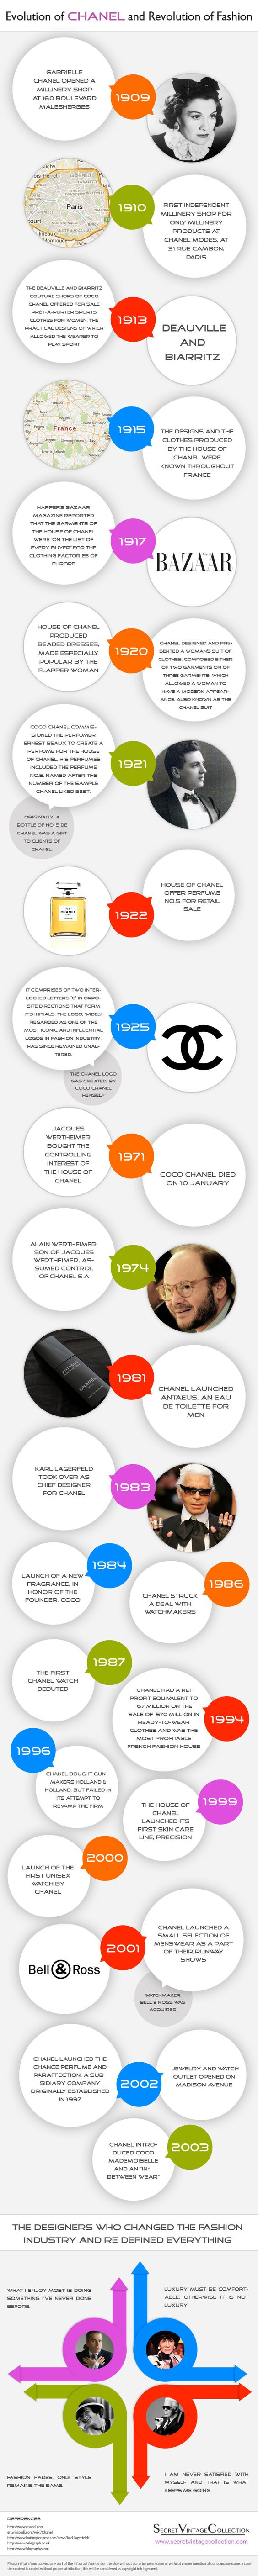 Evolution of Channel and Revolution of Fashion #infographic #Fashion #History